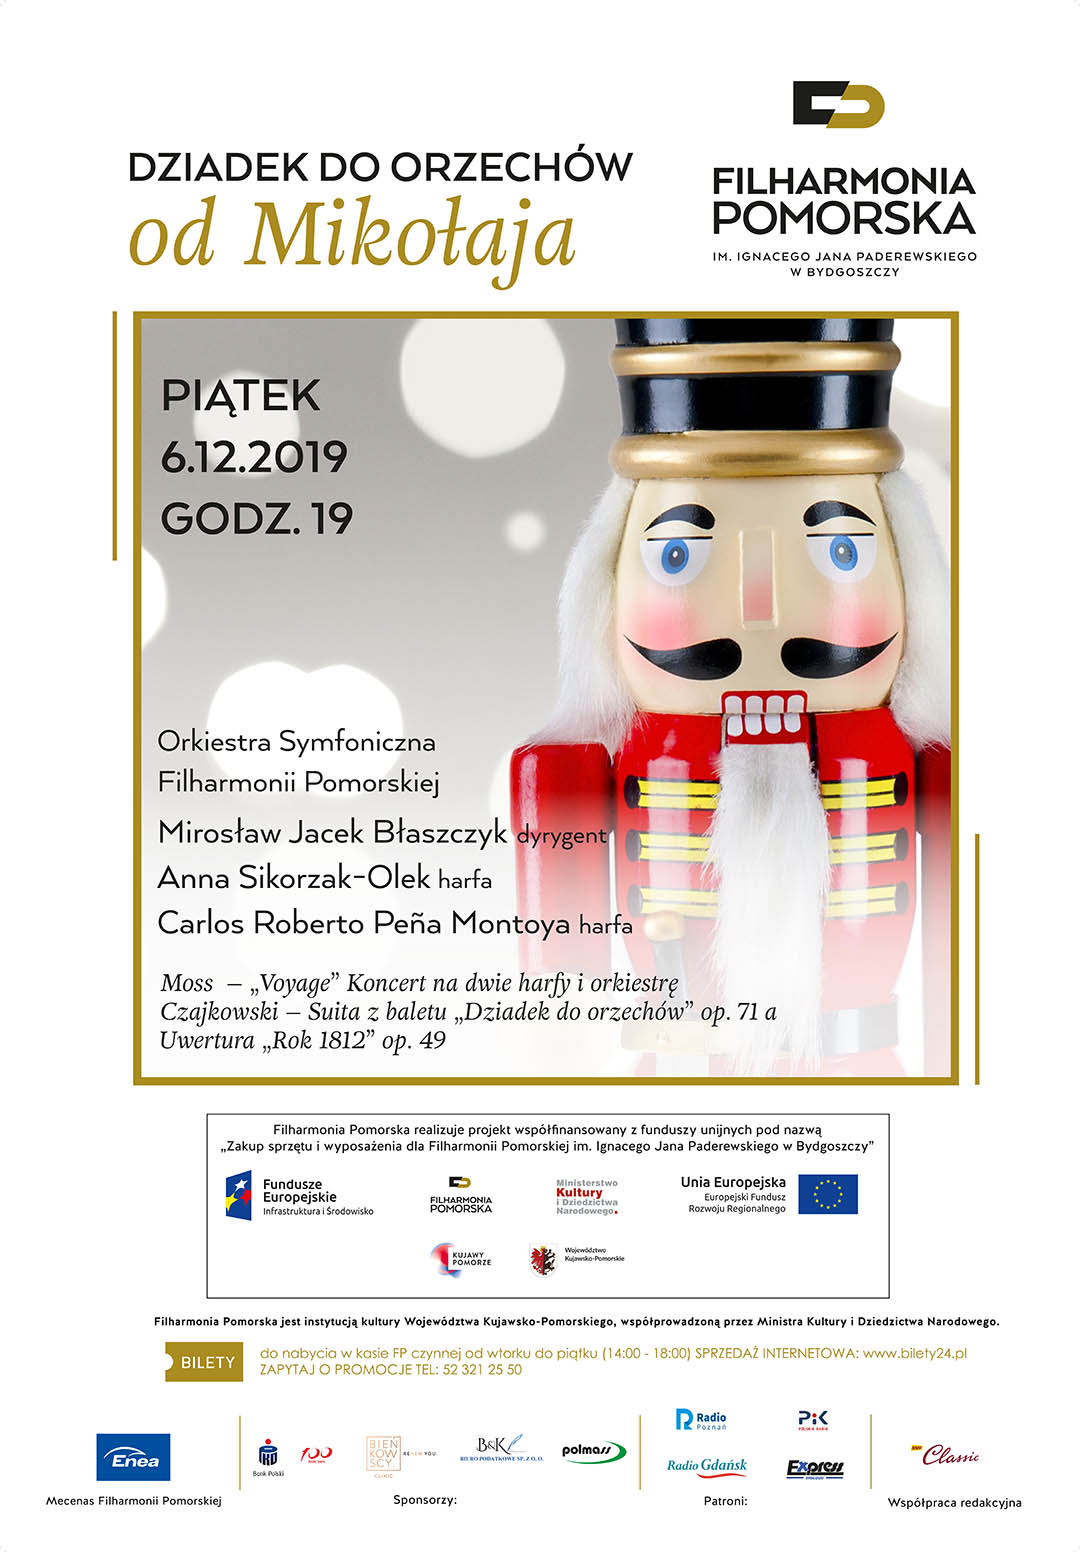 Nutcracker from Santa poster